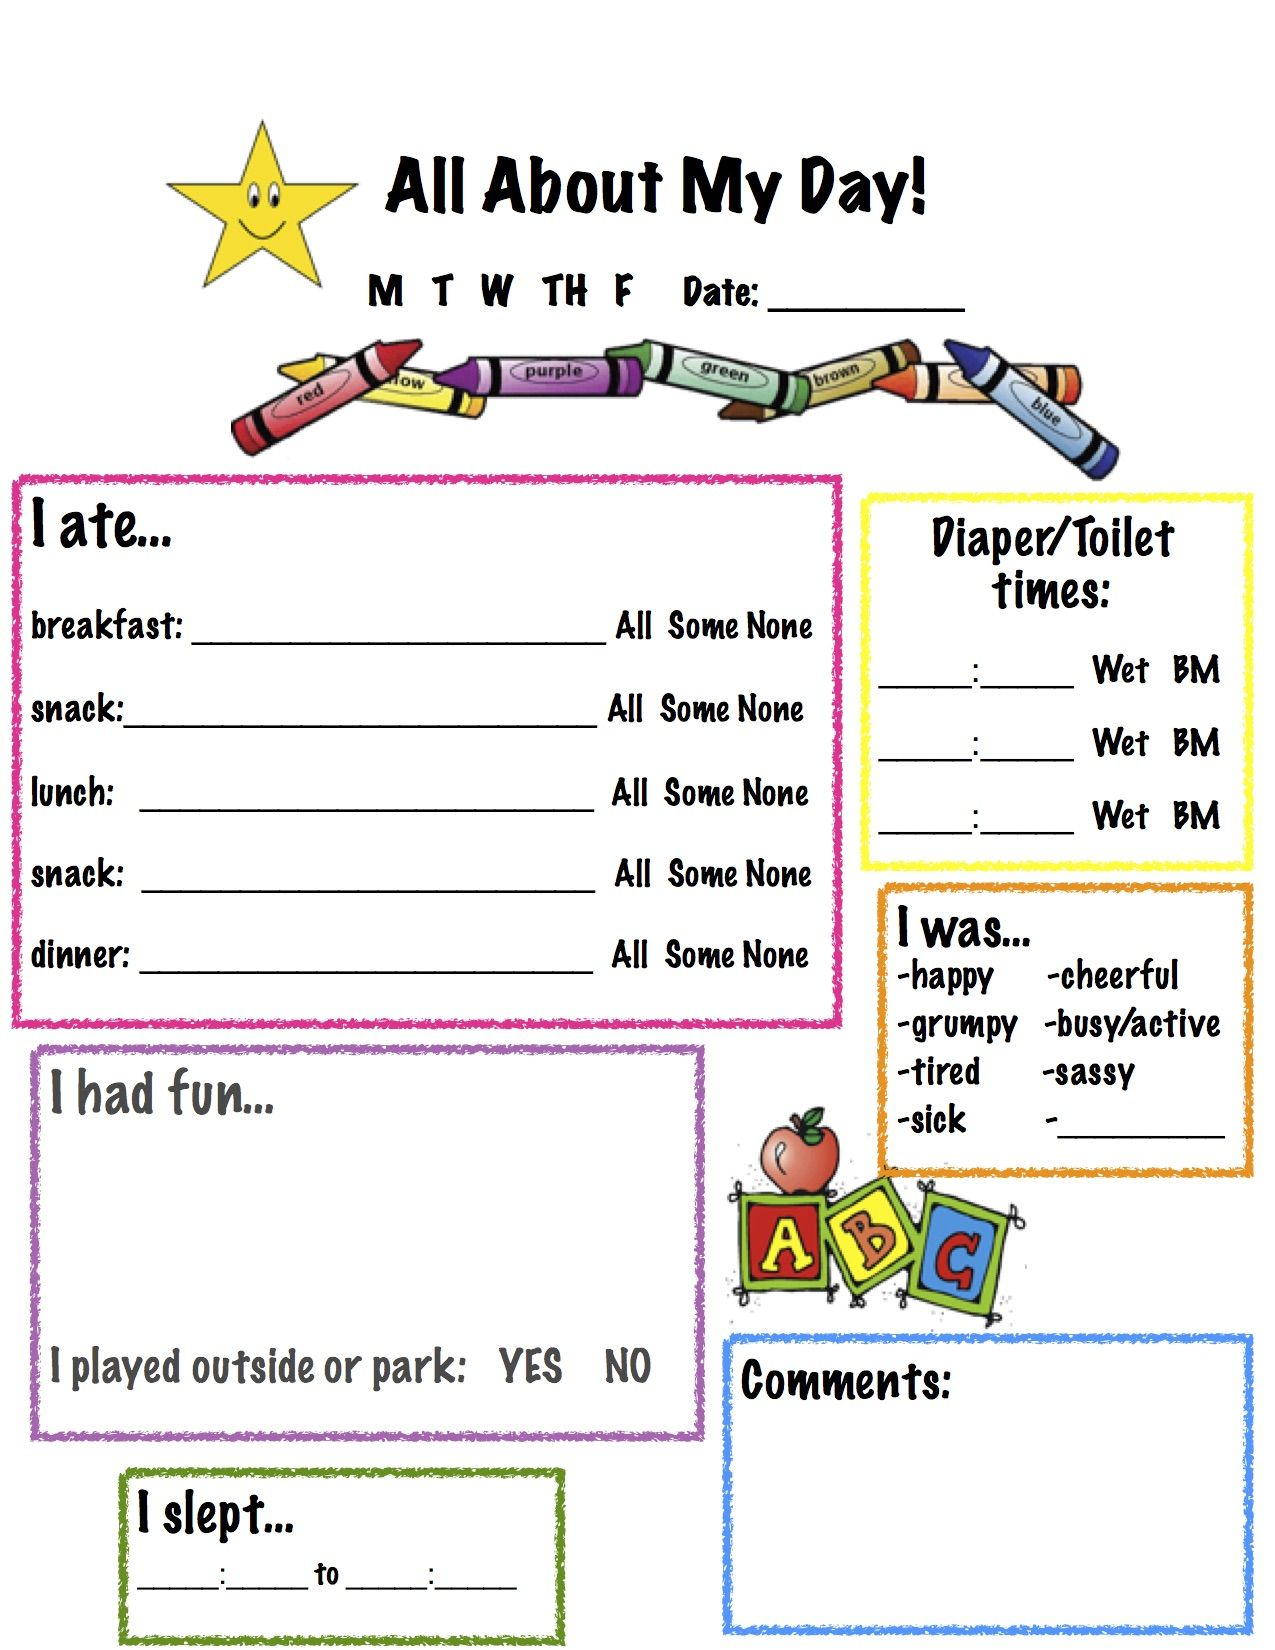 All About My Day Toddler Report Sheet For Nanny I